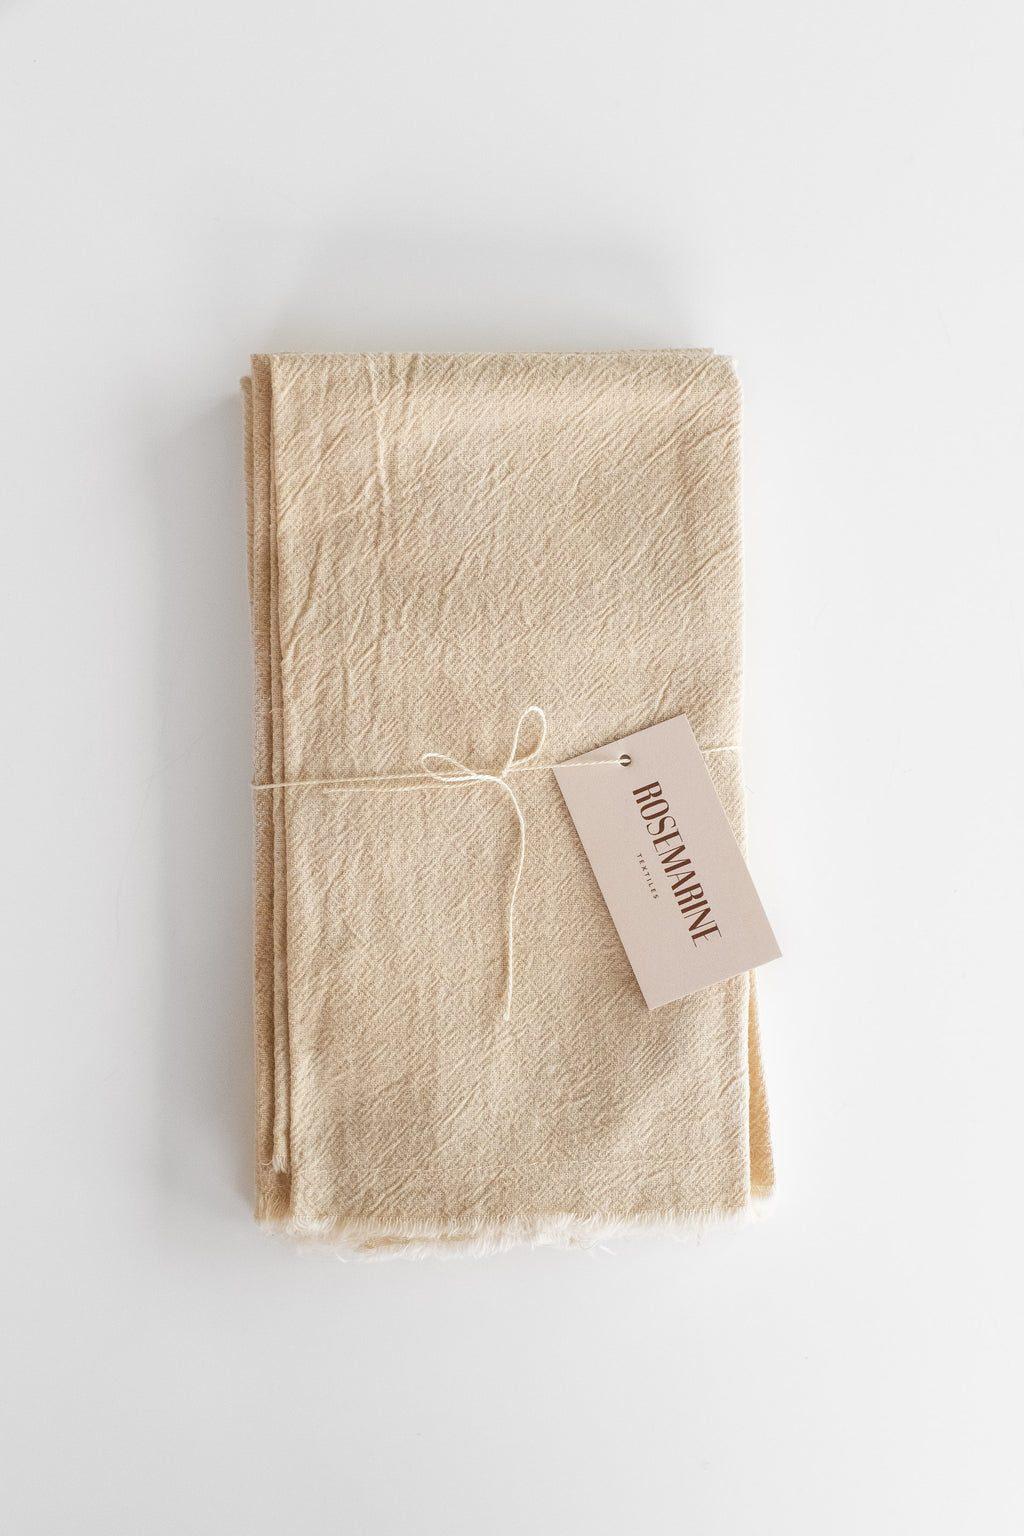 NATURALLY DYED COTTON GAUZE NAPKINS IN SAND